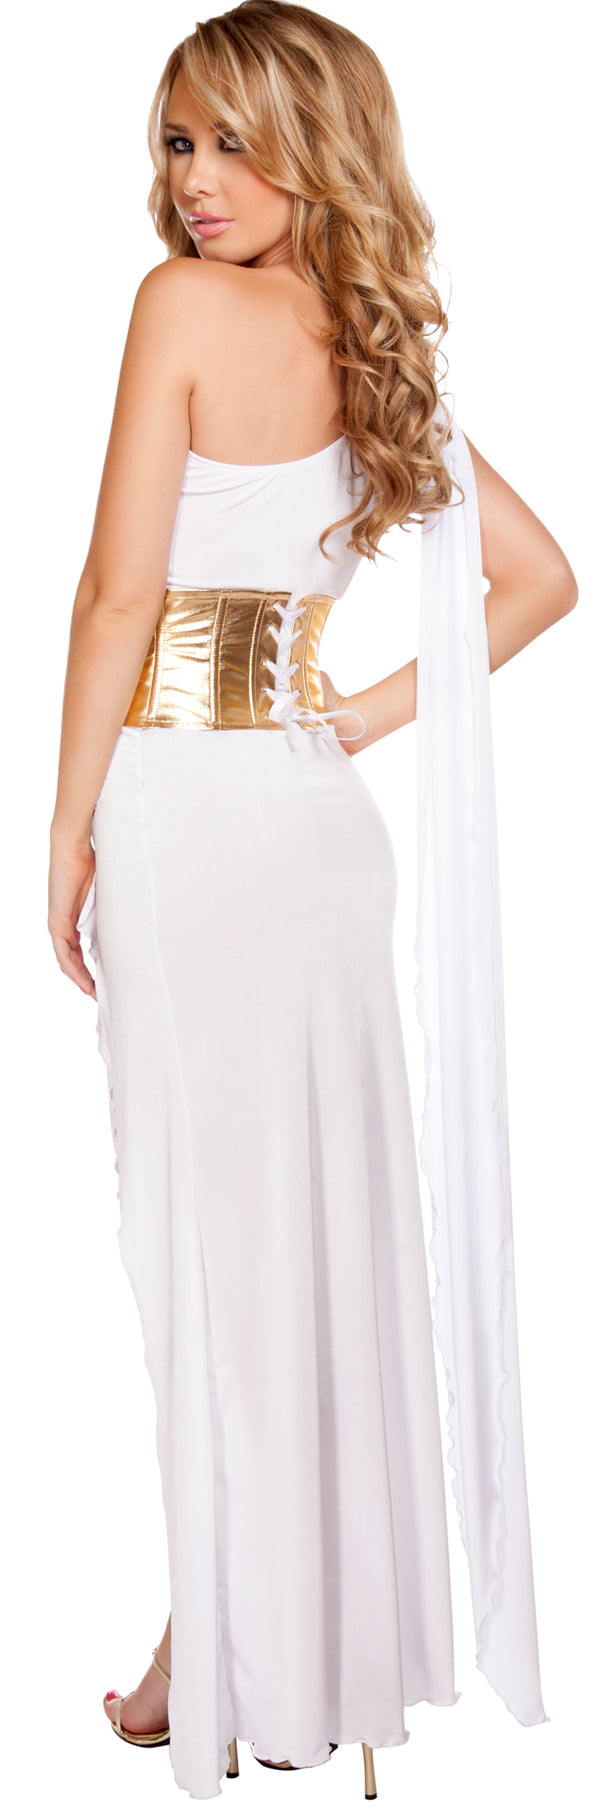 Grecian Babe Costume RM4619 Back